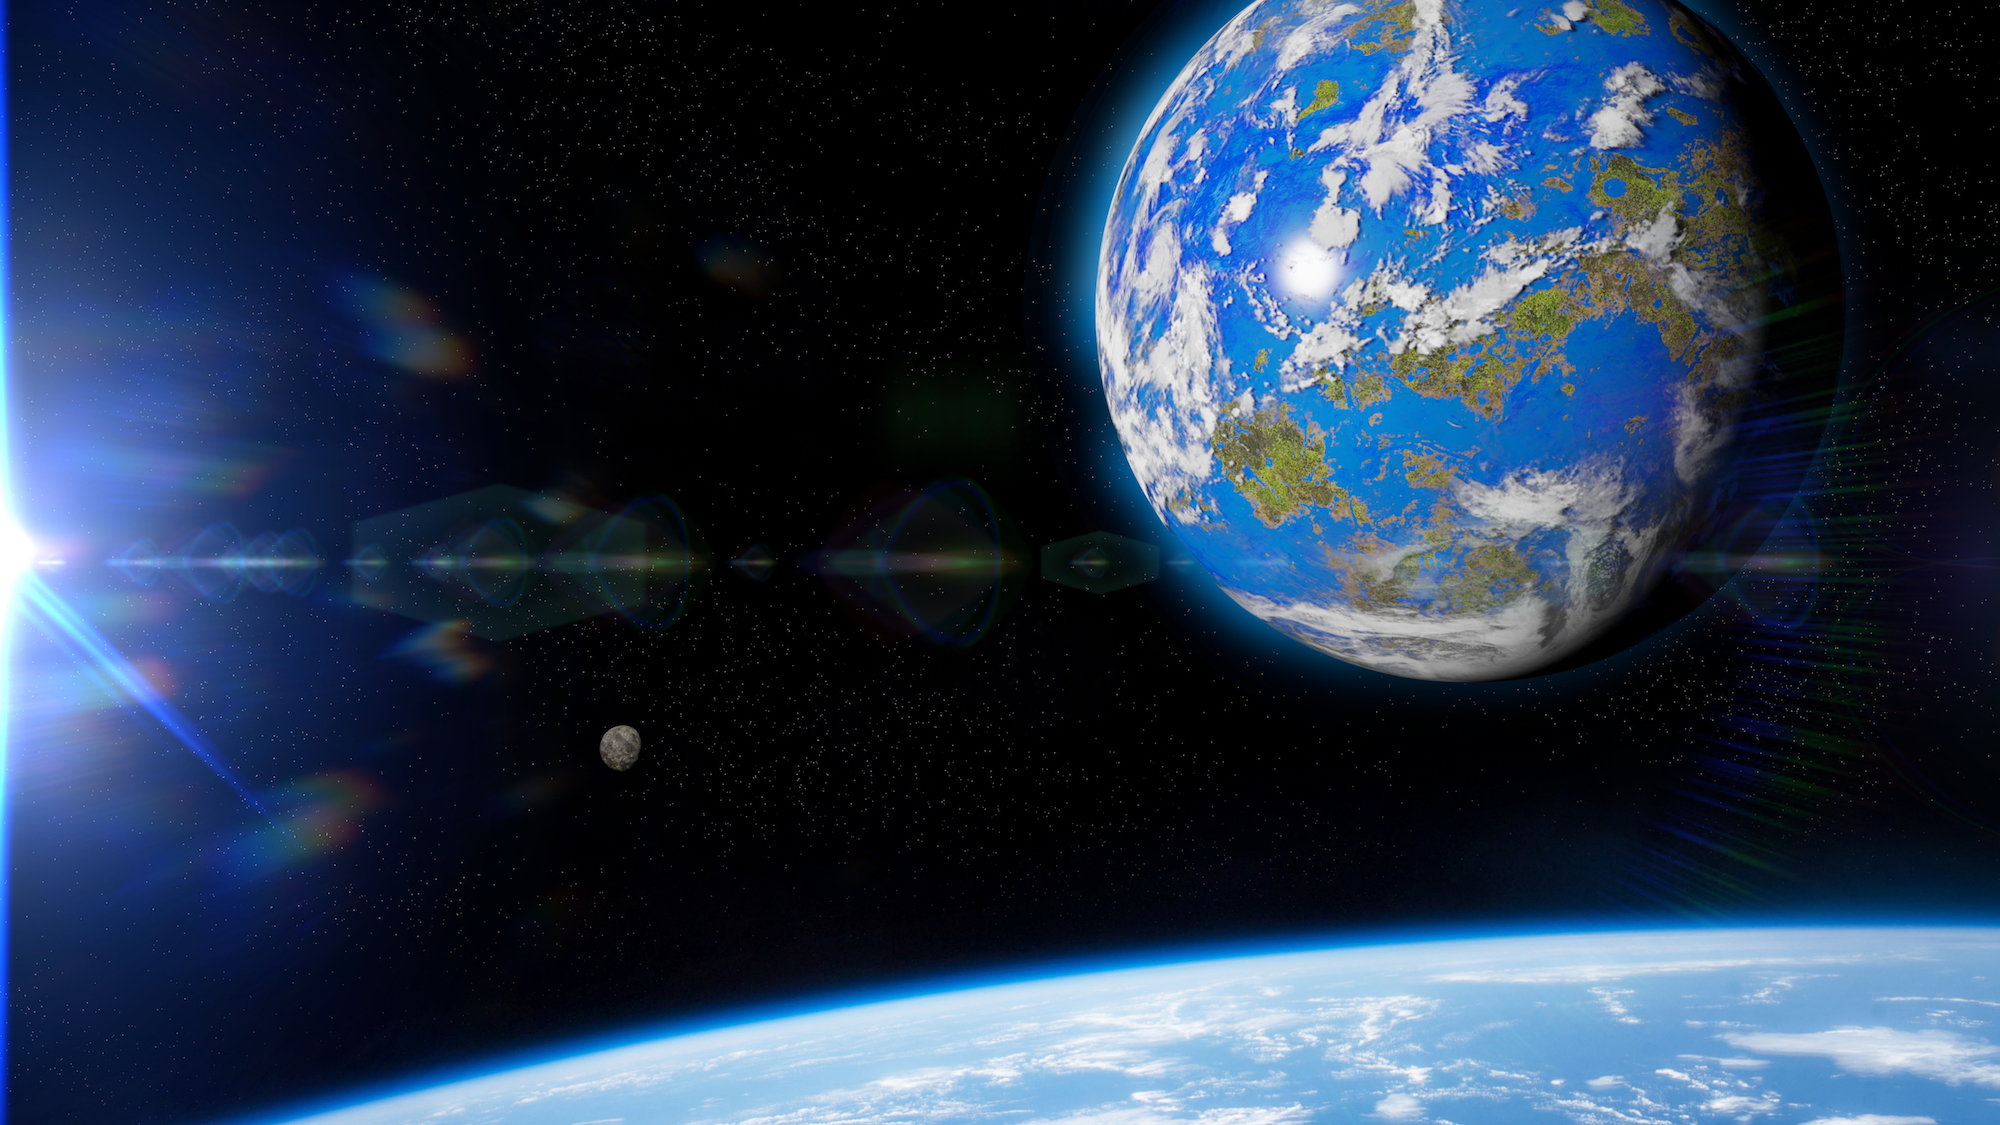 If Earth Grew 10x, you'd be Half as Tall